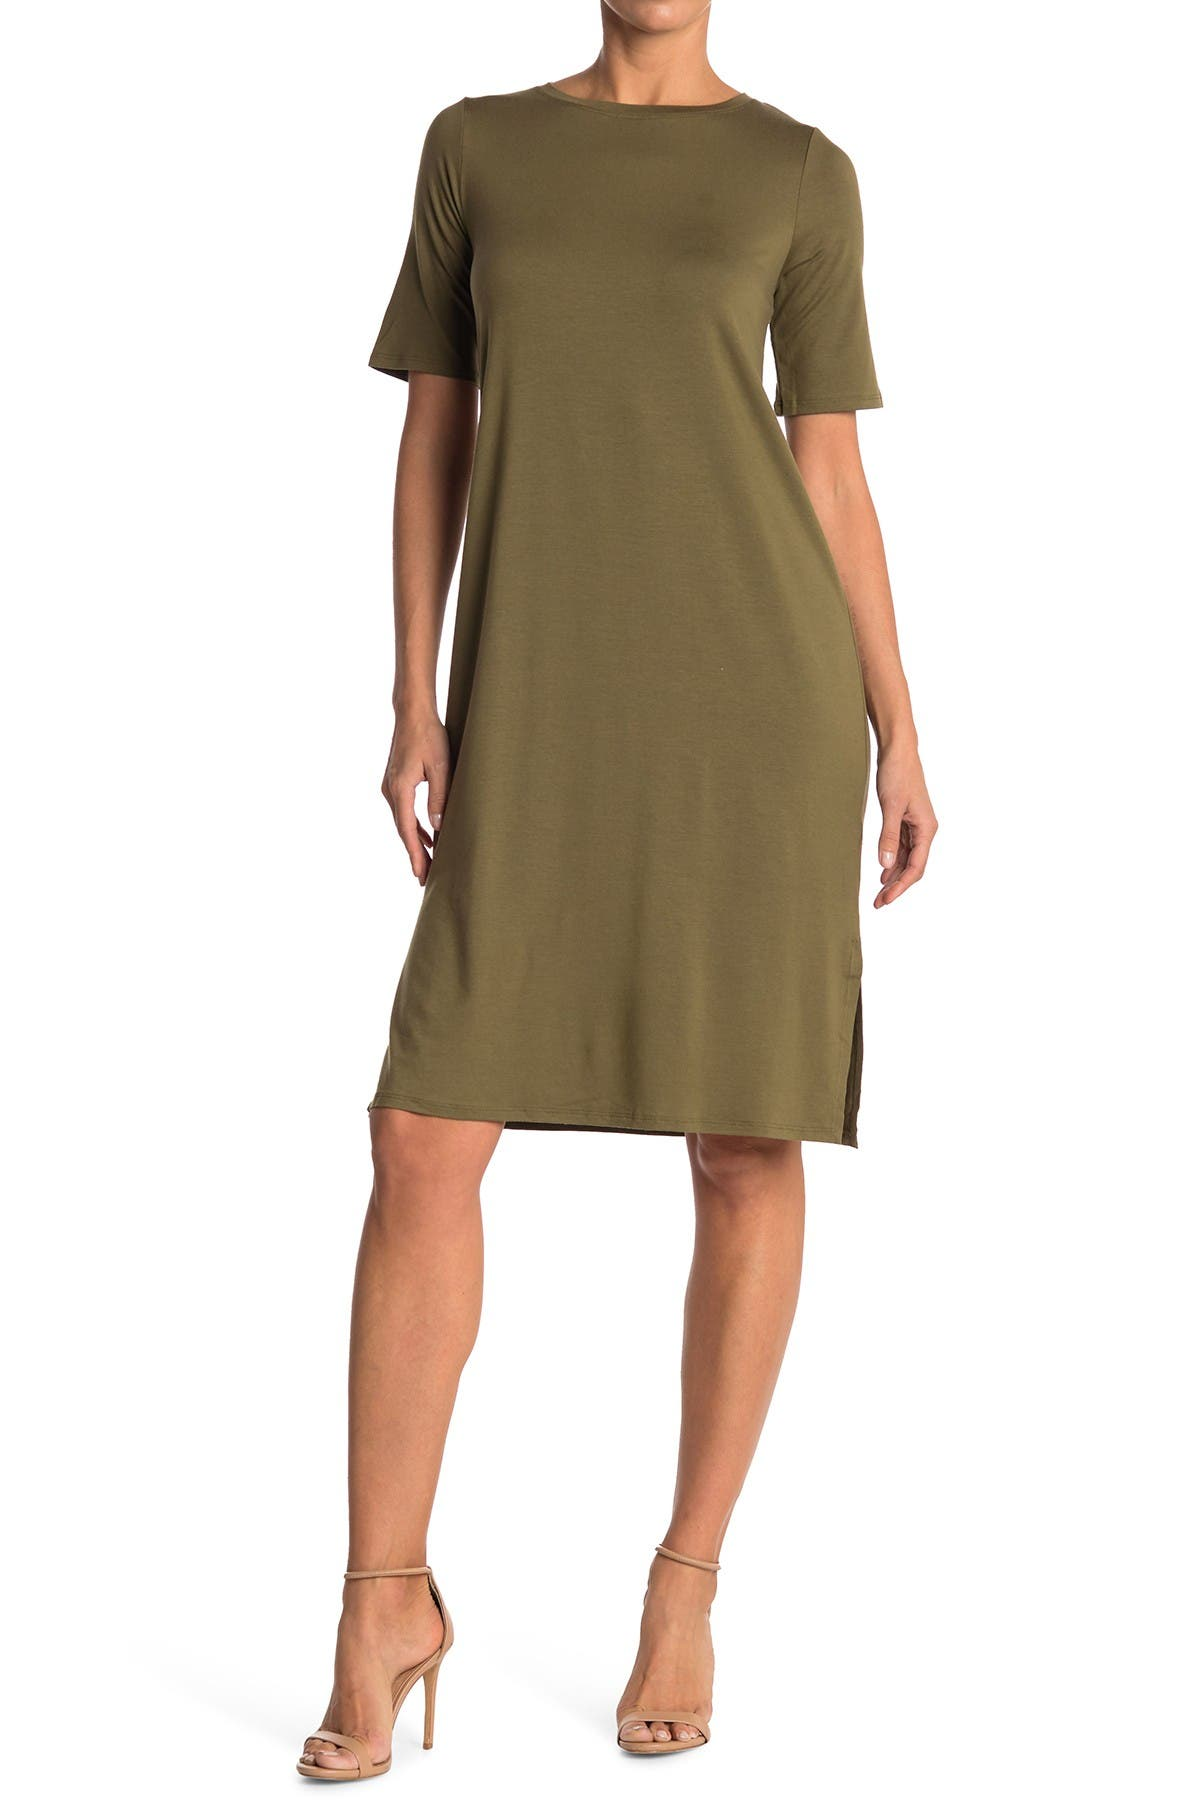 Image of Eileen Fisher Slit Hem T-Shirt Dress